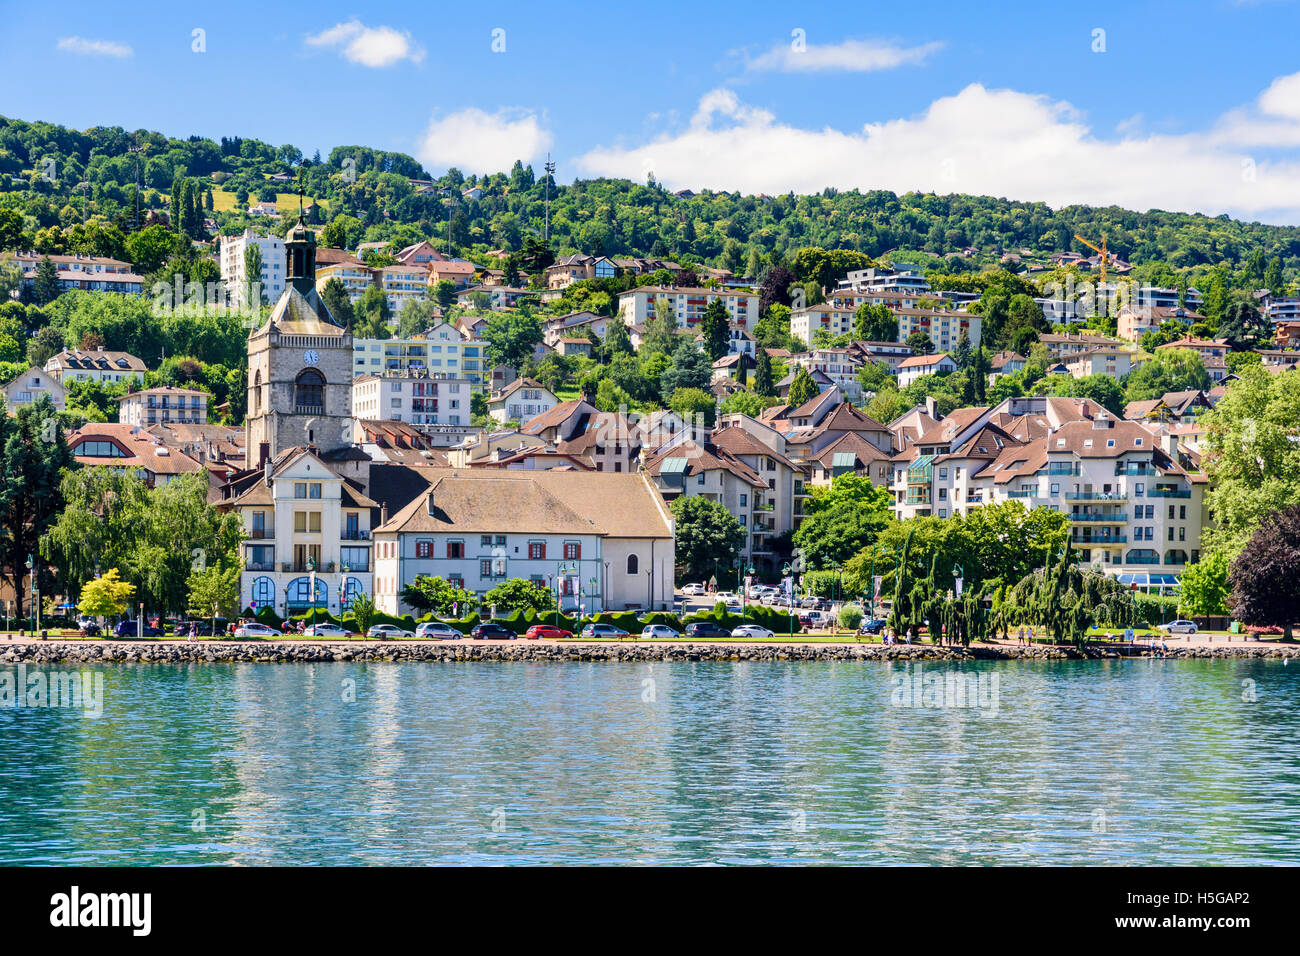 the pretty lake geneva waterfront of evian town vian les bains stock photo royalty free image. Black Bedroom Furniture Sets. Home Design Ideas